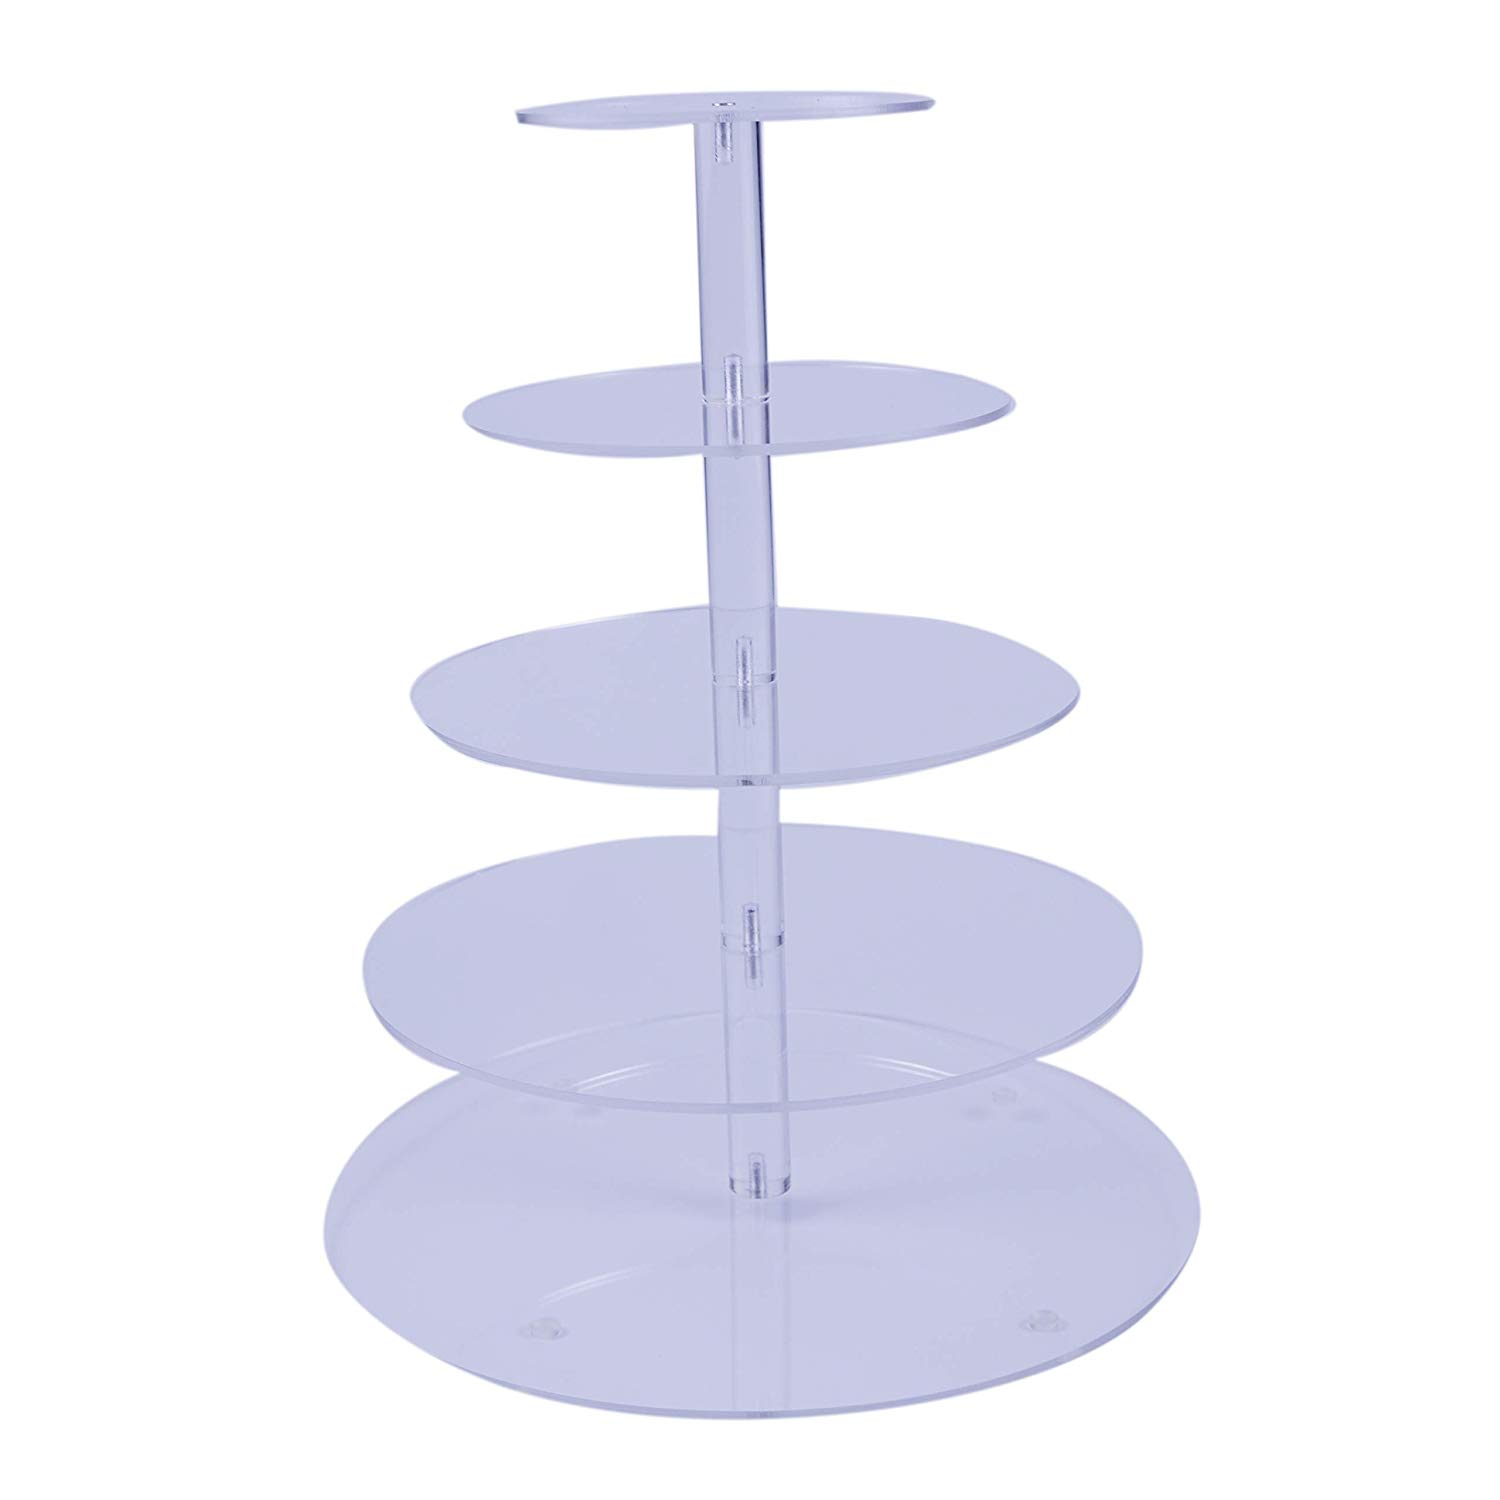 """5-Tier round Cupcake Stand - Acrylic Tiered Cake Stand - Dessert or Cupcake Tower ((5 tier round (3.9"""" Layer spacing))"""